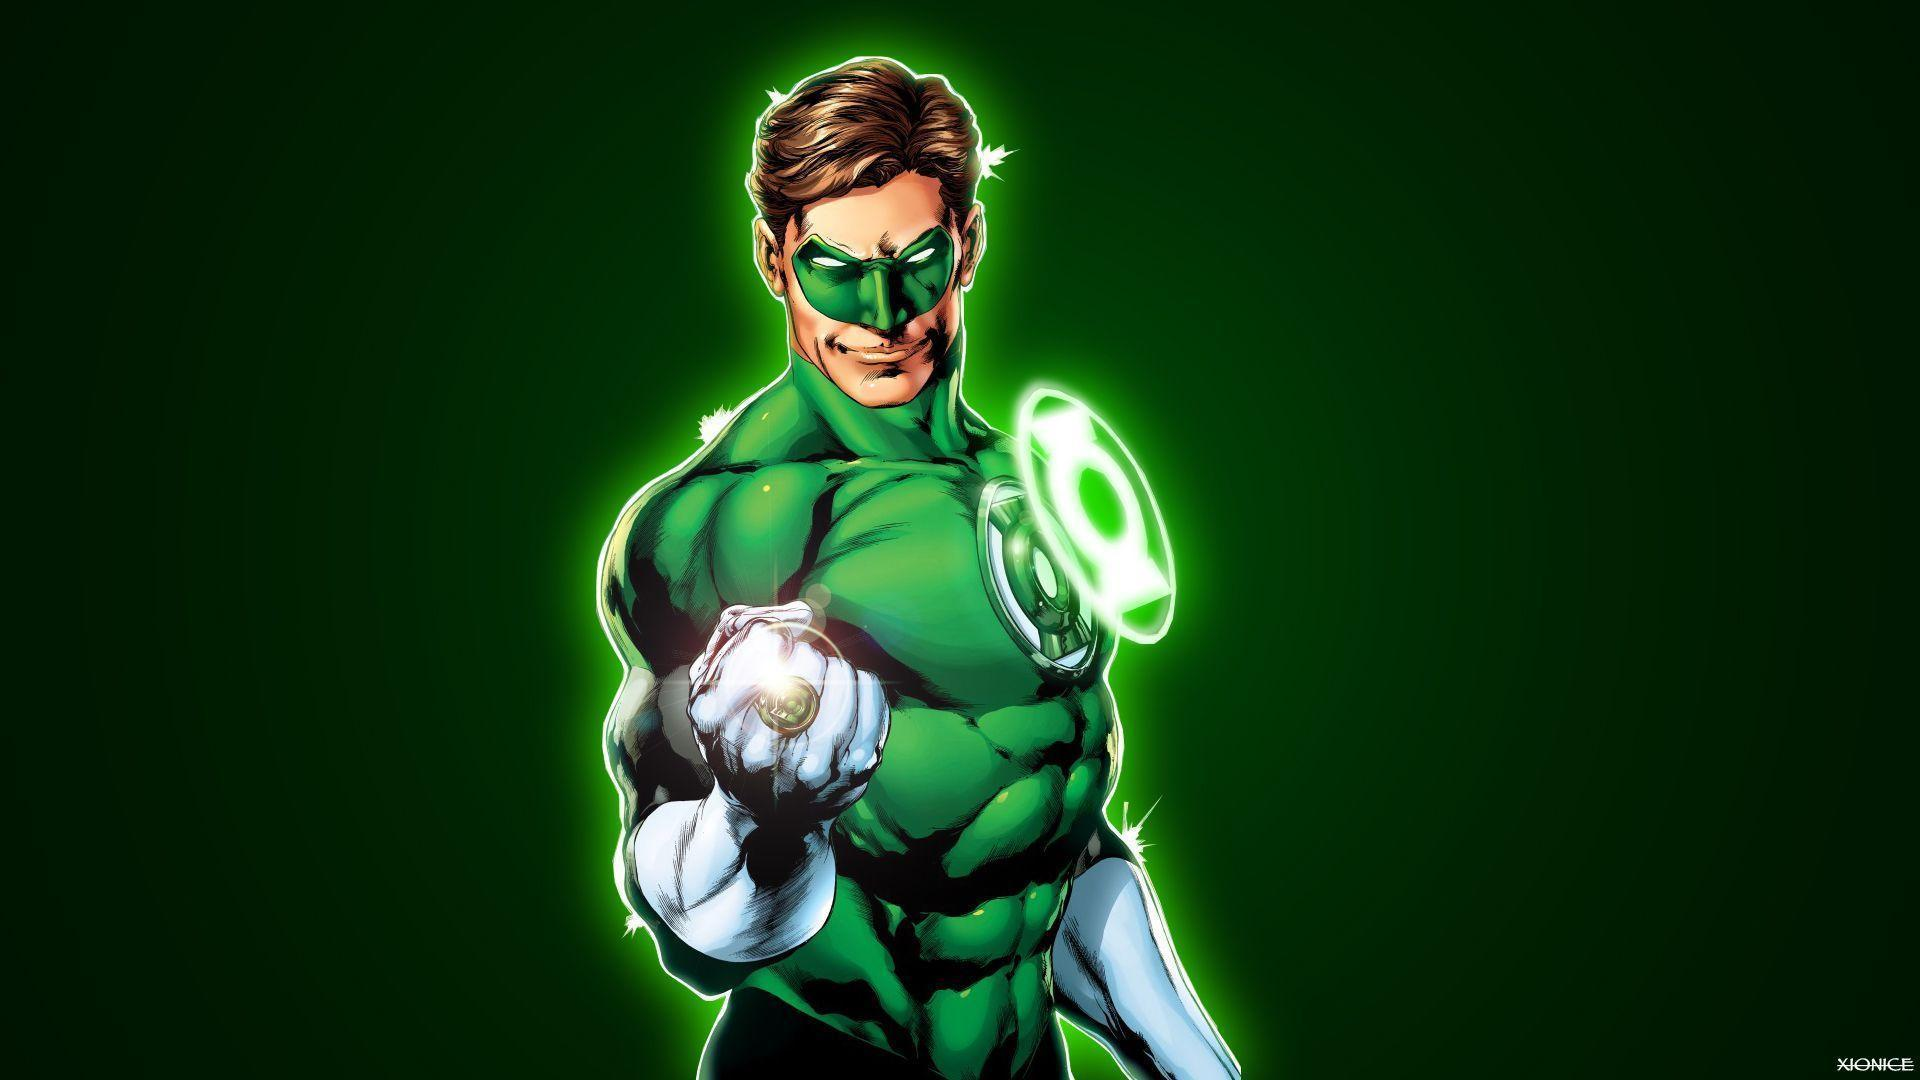 Green Lantern Wallpapers 1920x1080